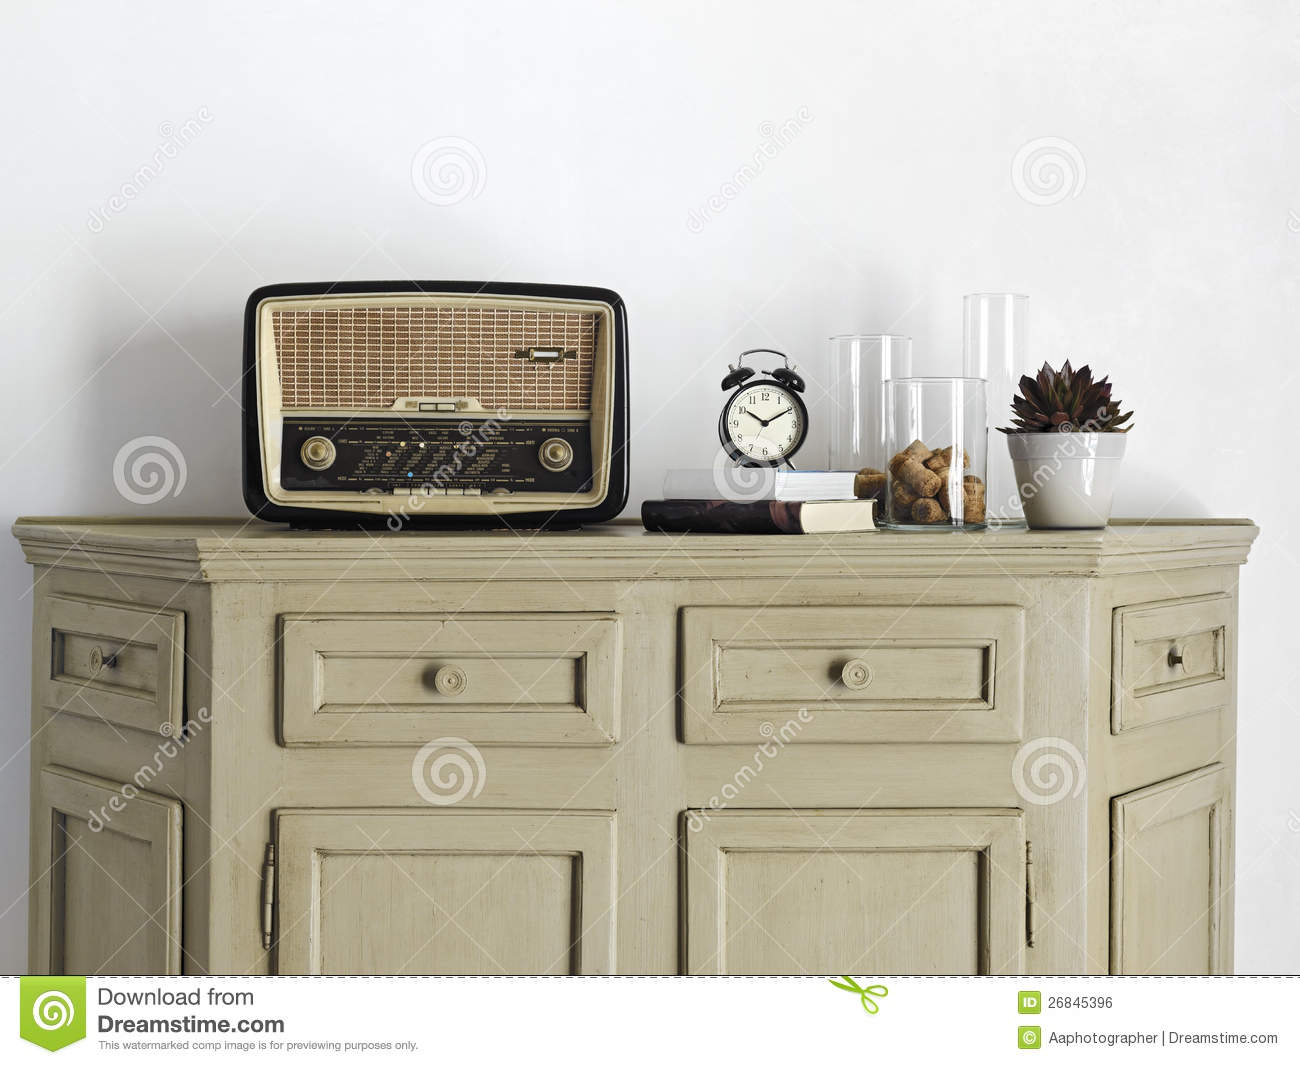 living room radio radio on the sideboard in the living room royalty free 11616